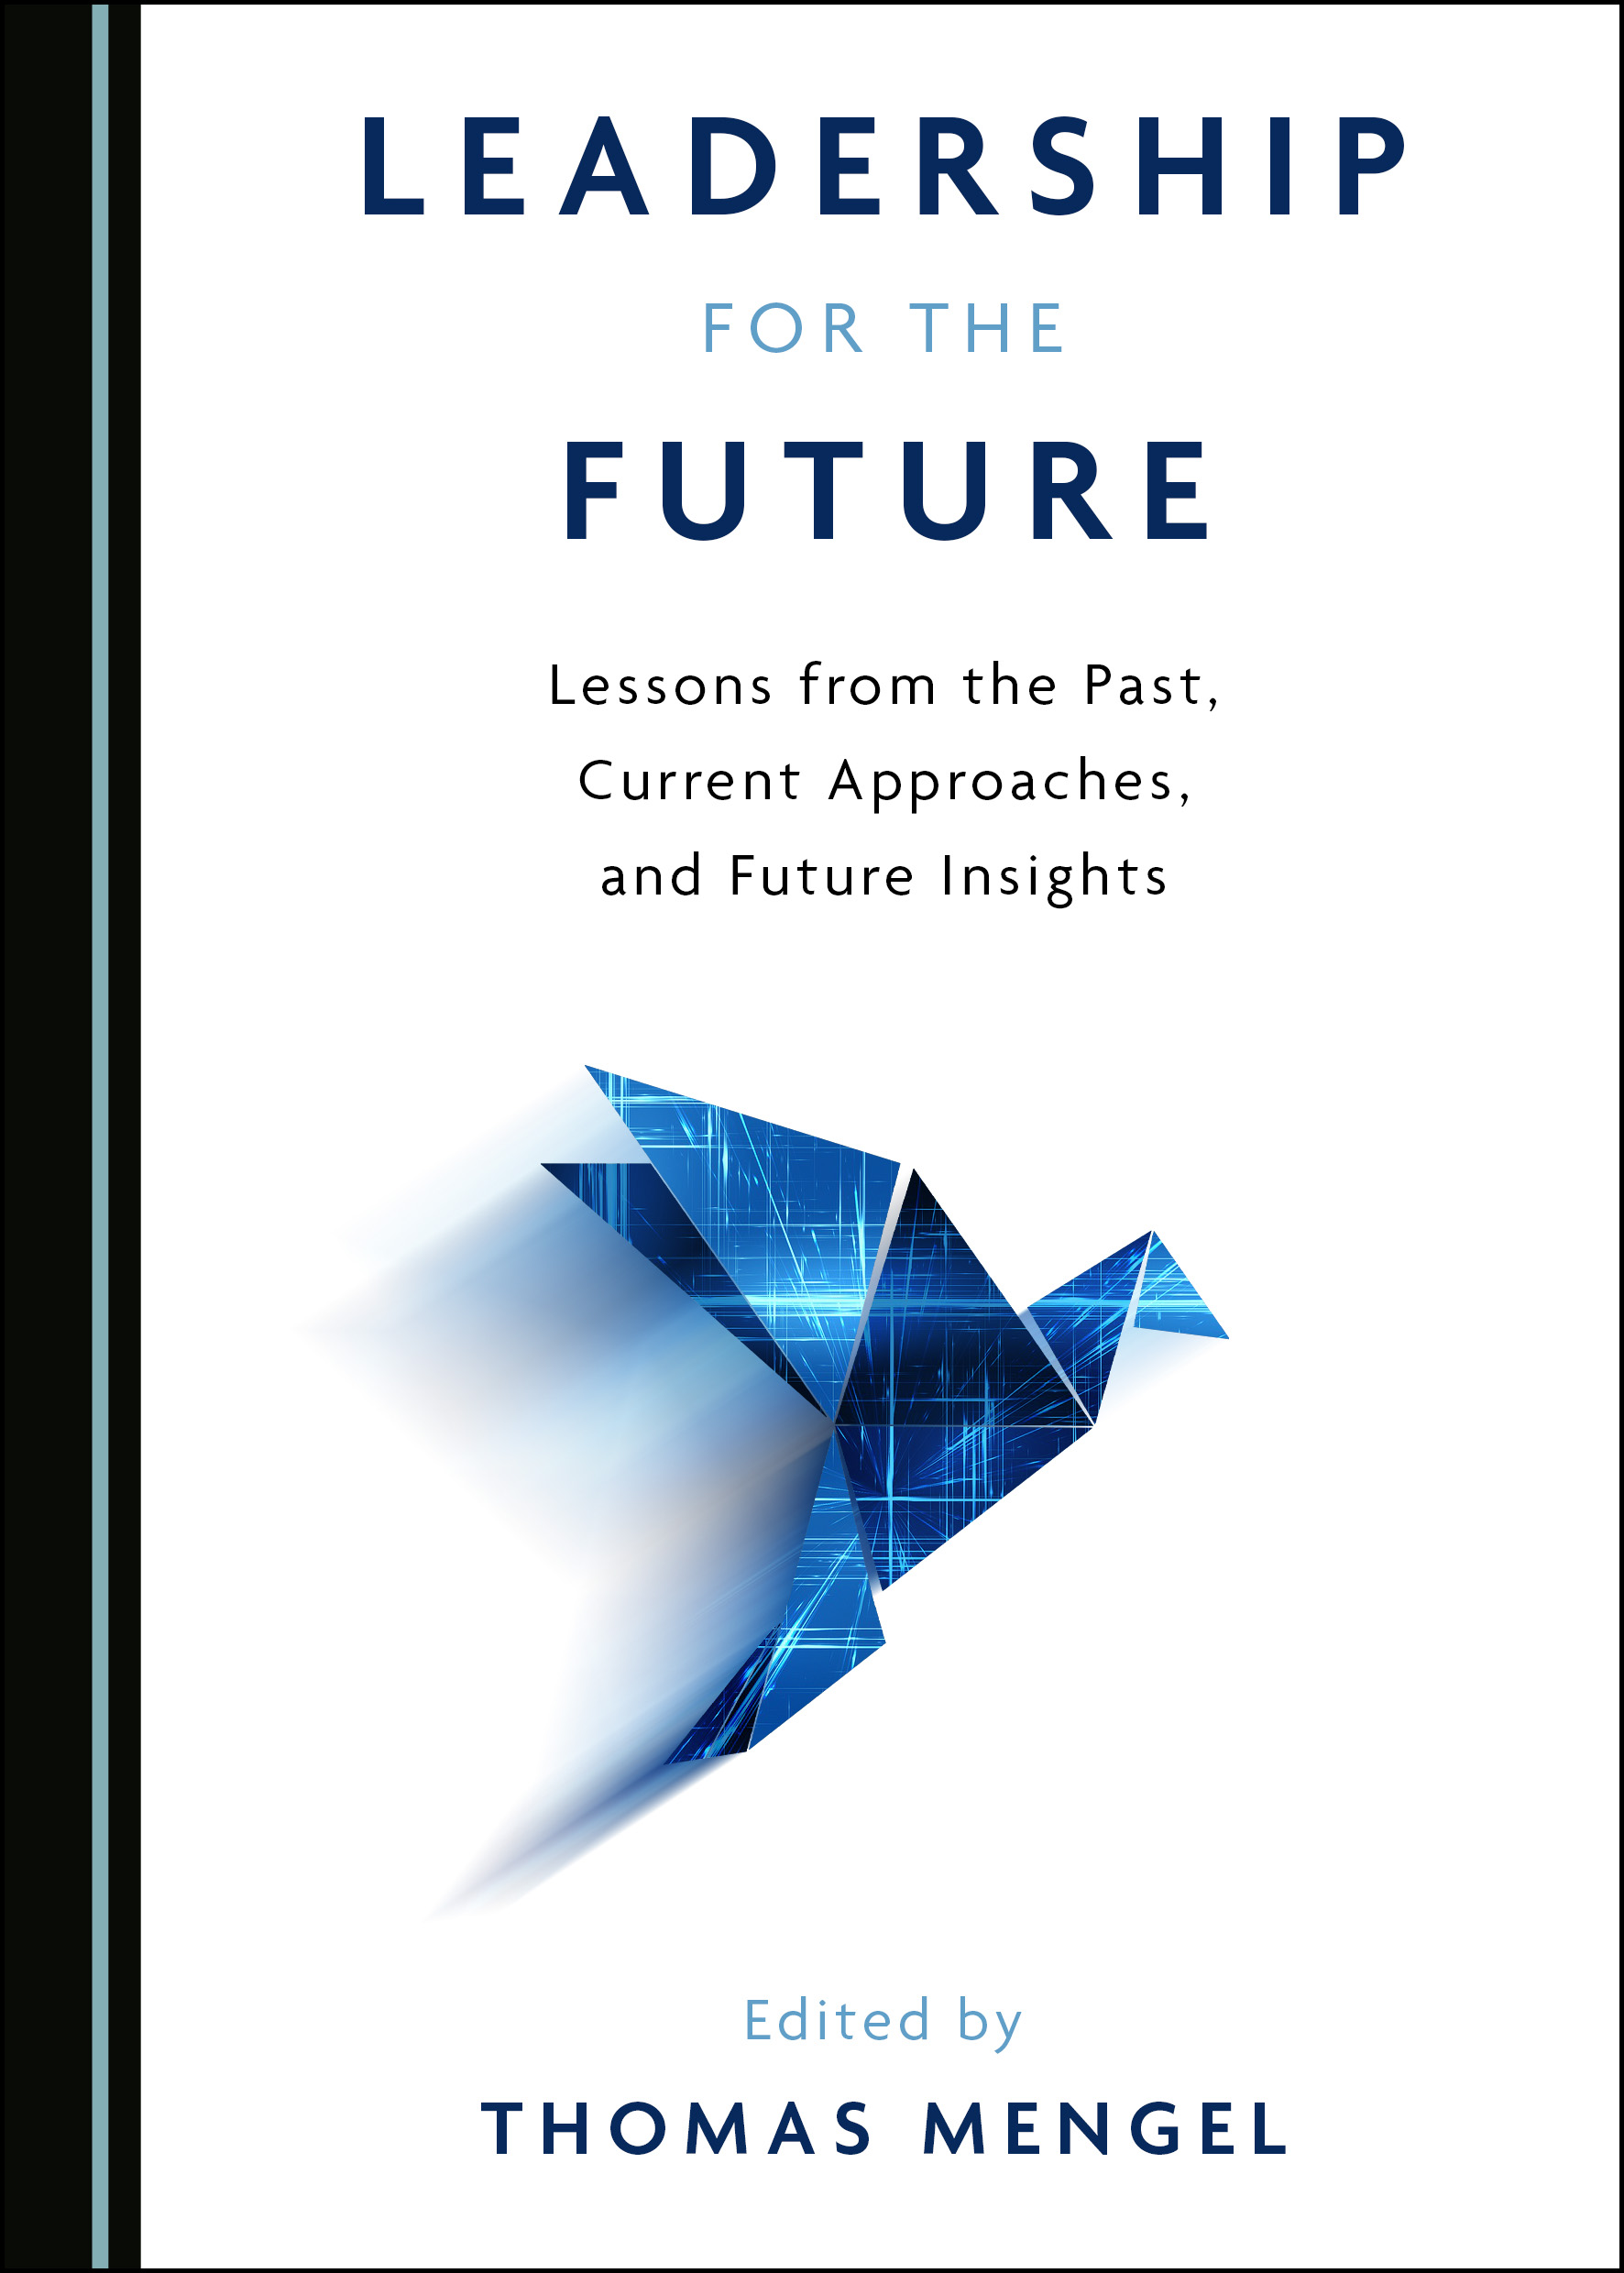 Leadership for the Future: Lessons from the Past, Current Approaches, and Future Insights